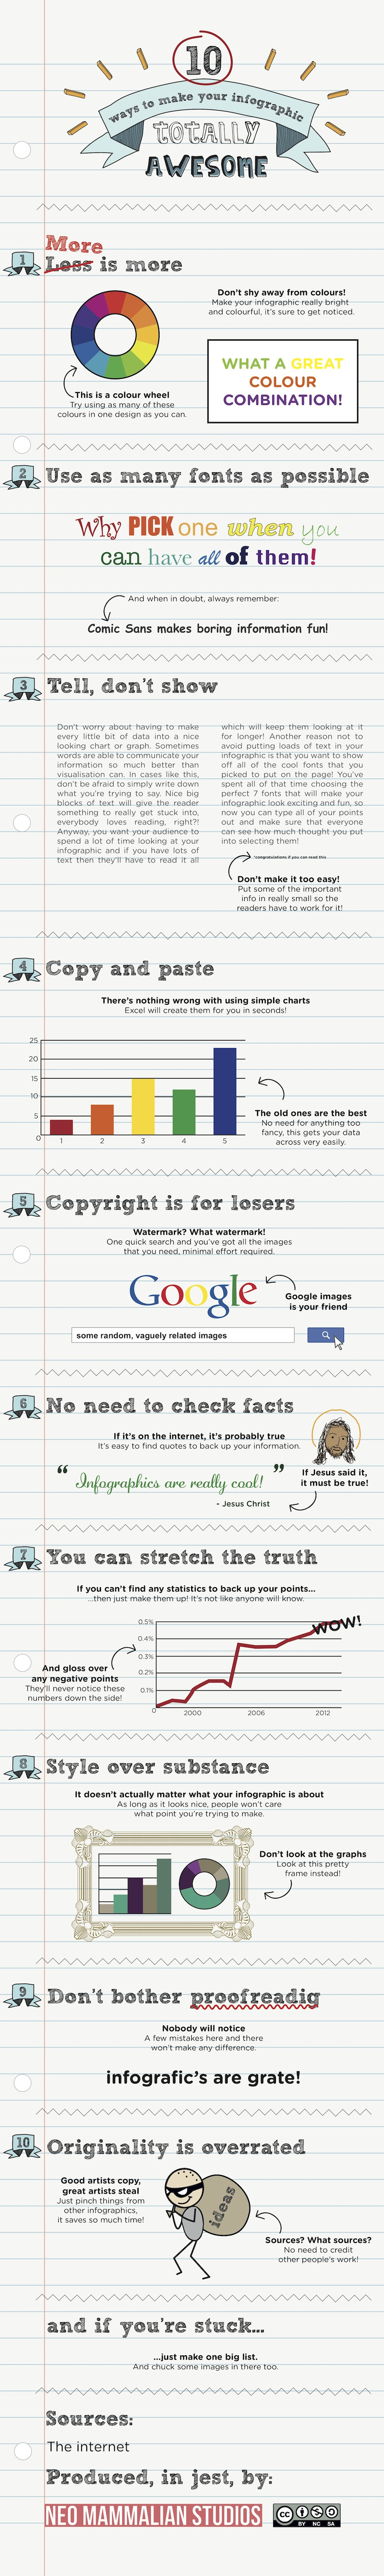 10 Ways to Make Your Infographic Totally NOT Awesome